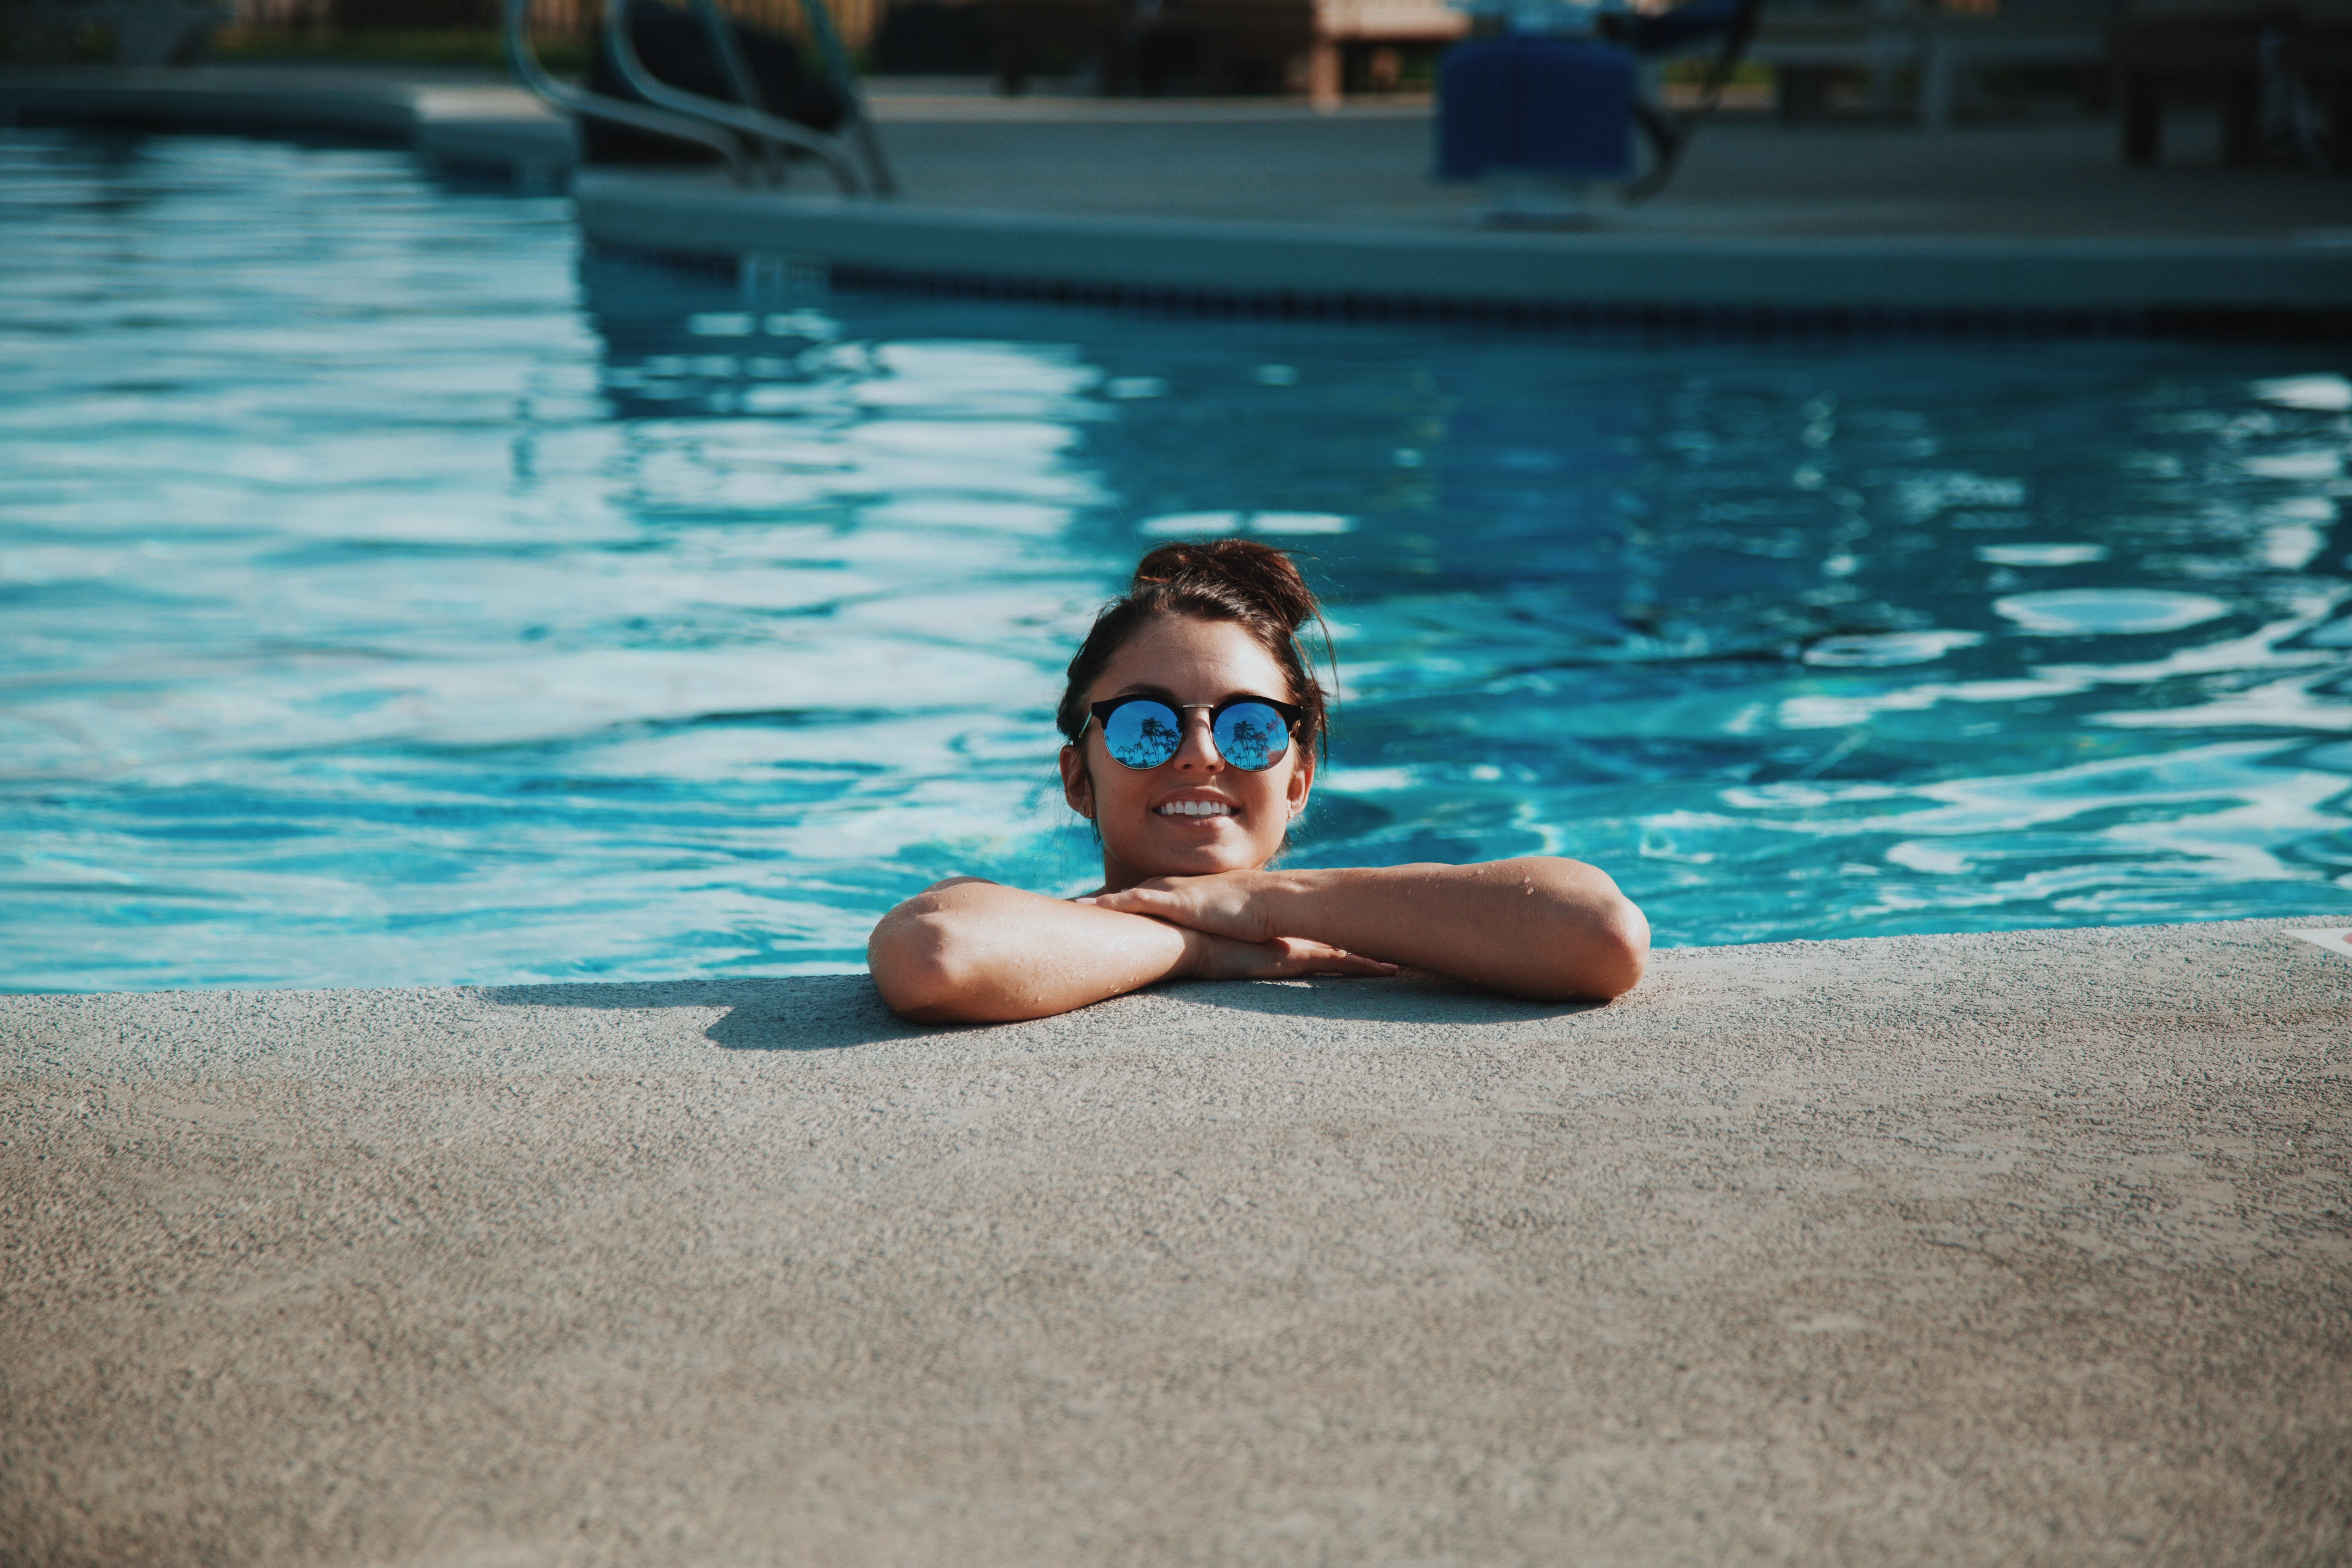 woman wearing sunglasses on swimming pool during daytime